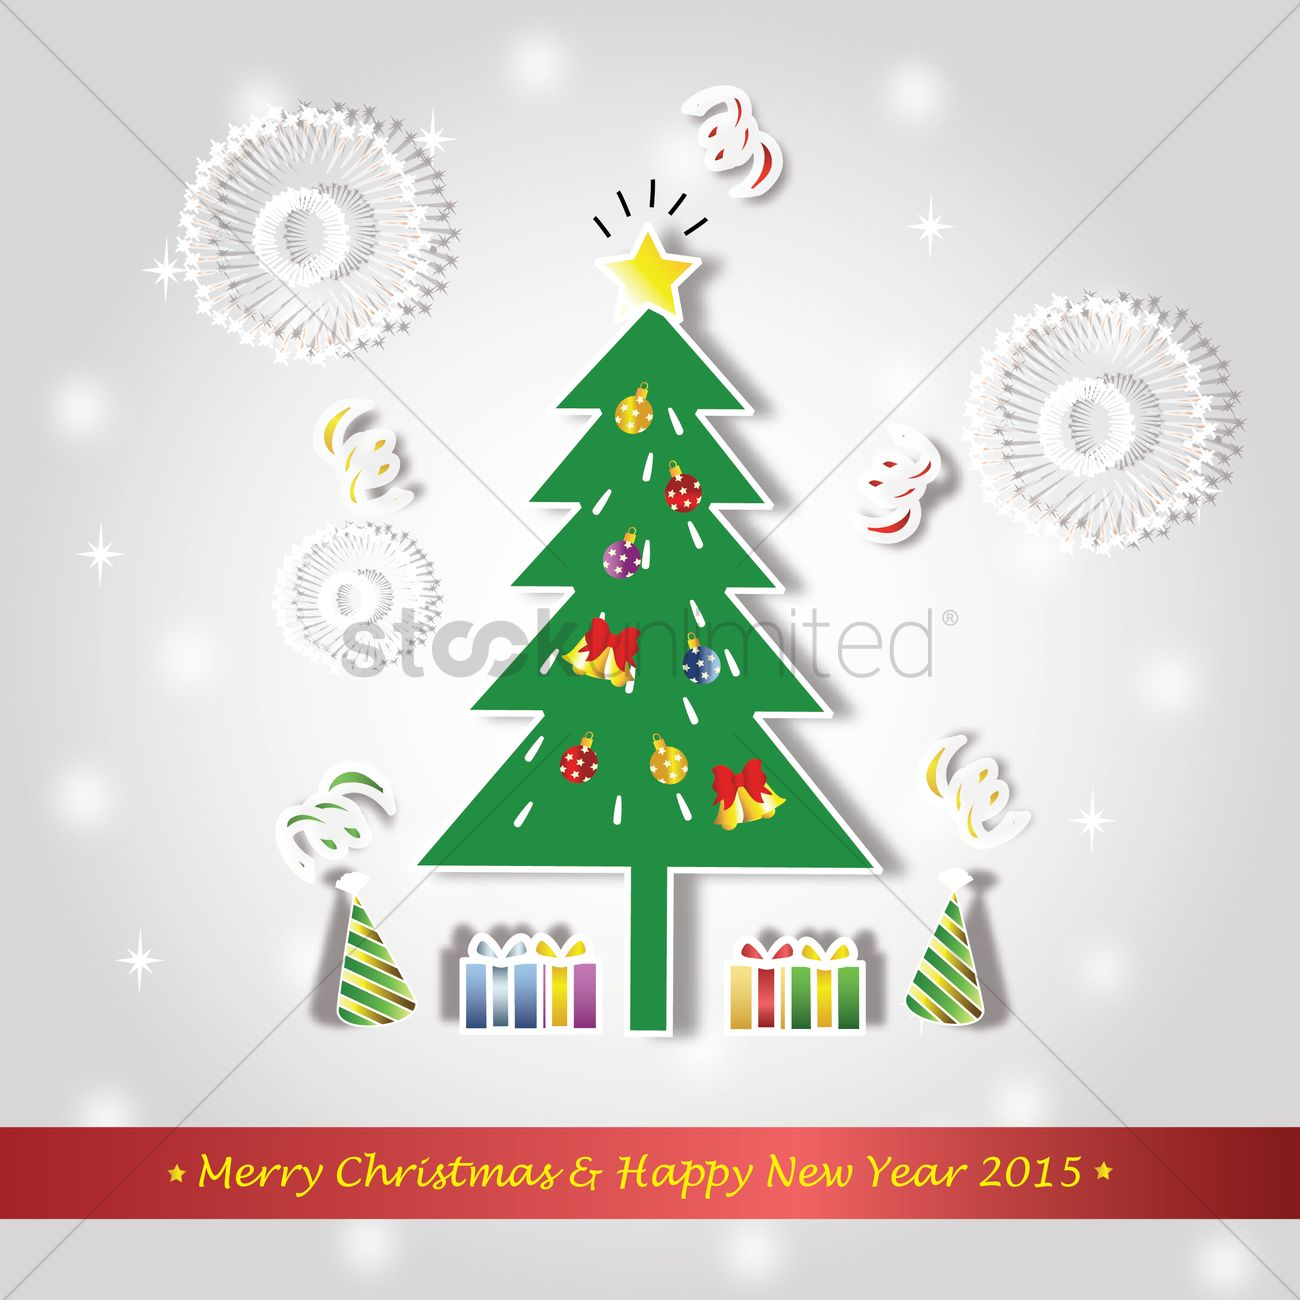 Merry christmas and happy new year card Vector Image - 1483945 ...